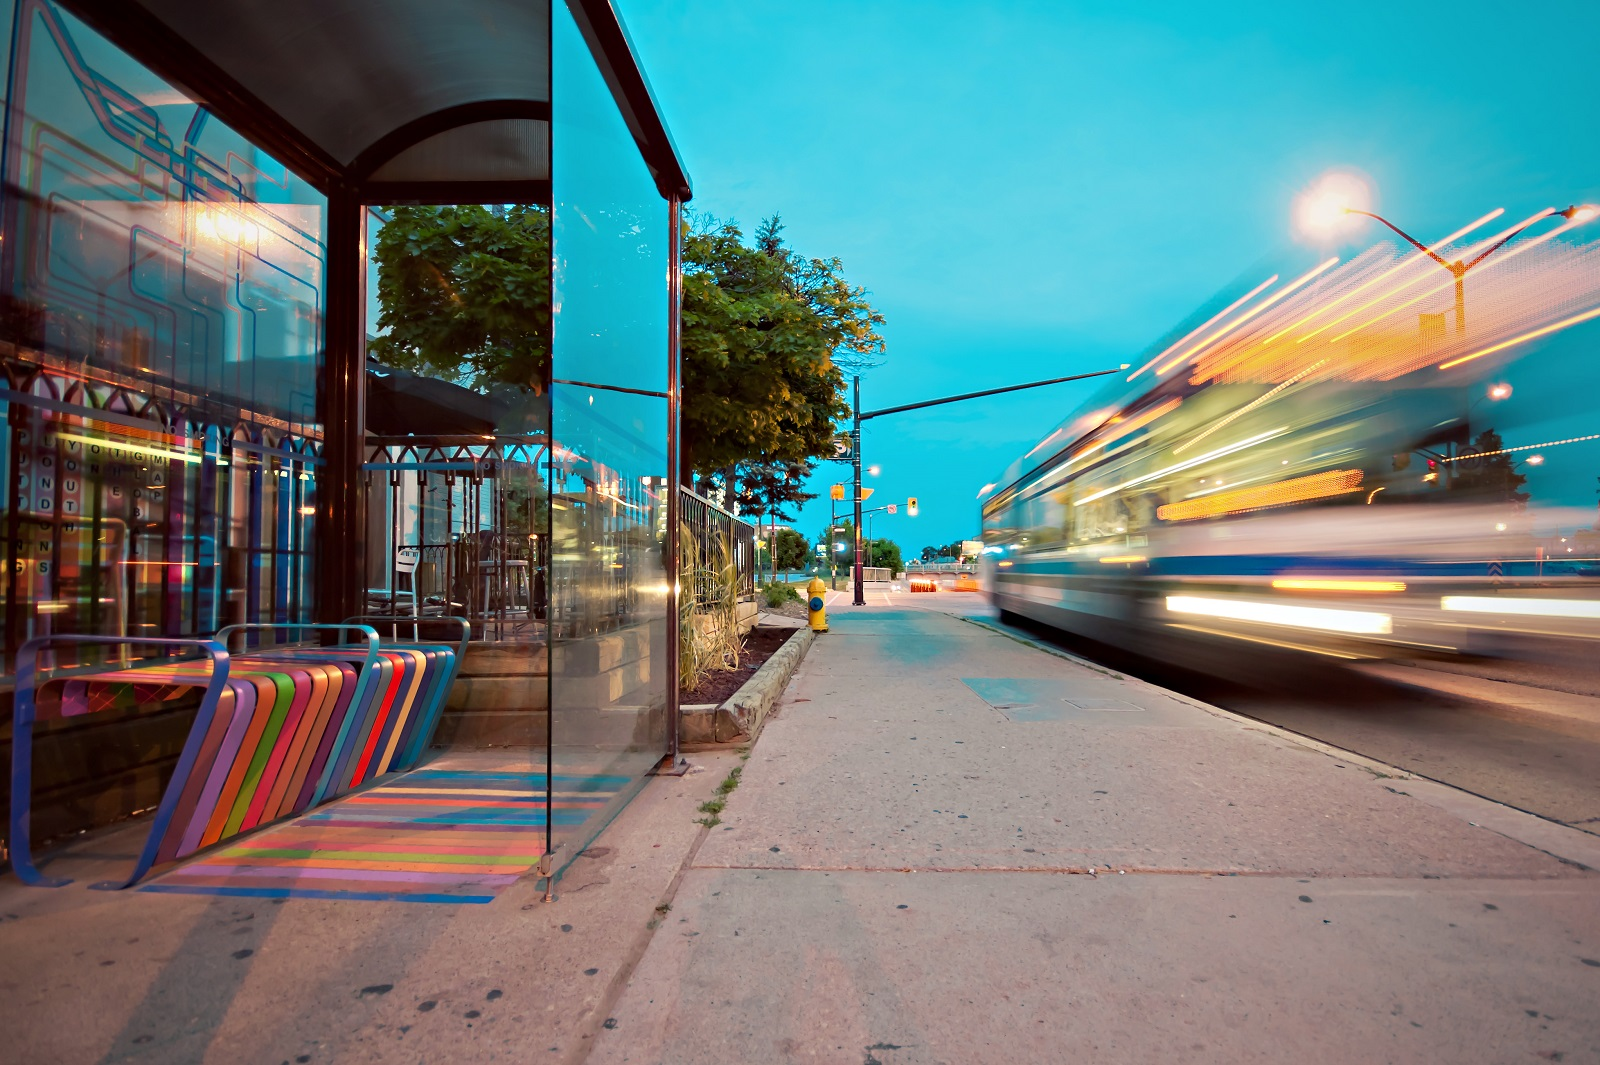 Access control solutions for the mass transit